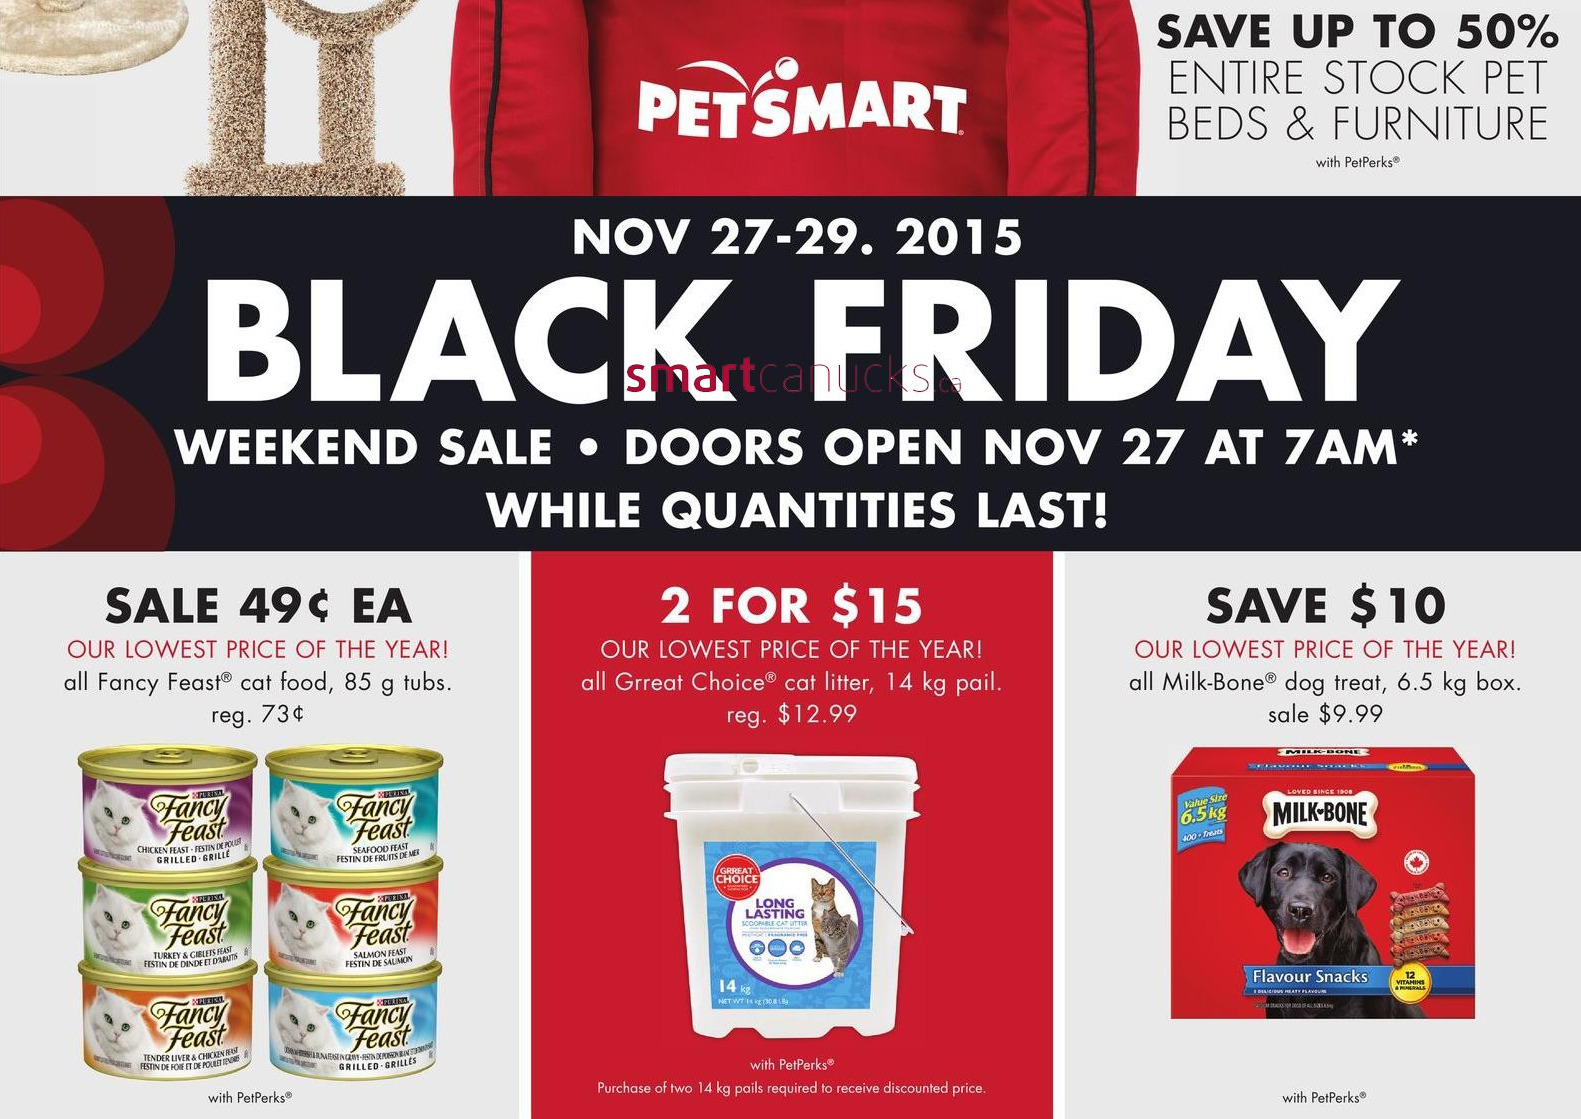 PetSmart is a large chain of stores operating all throughout North America, offering live pets, pet products to retail consumers since Typical pet products include food, litter, grooming aids, apparel, collars leashes, toys and much more.